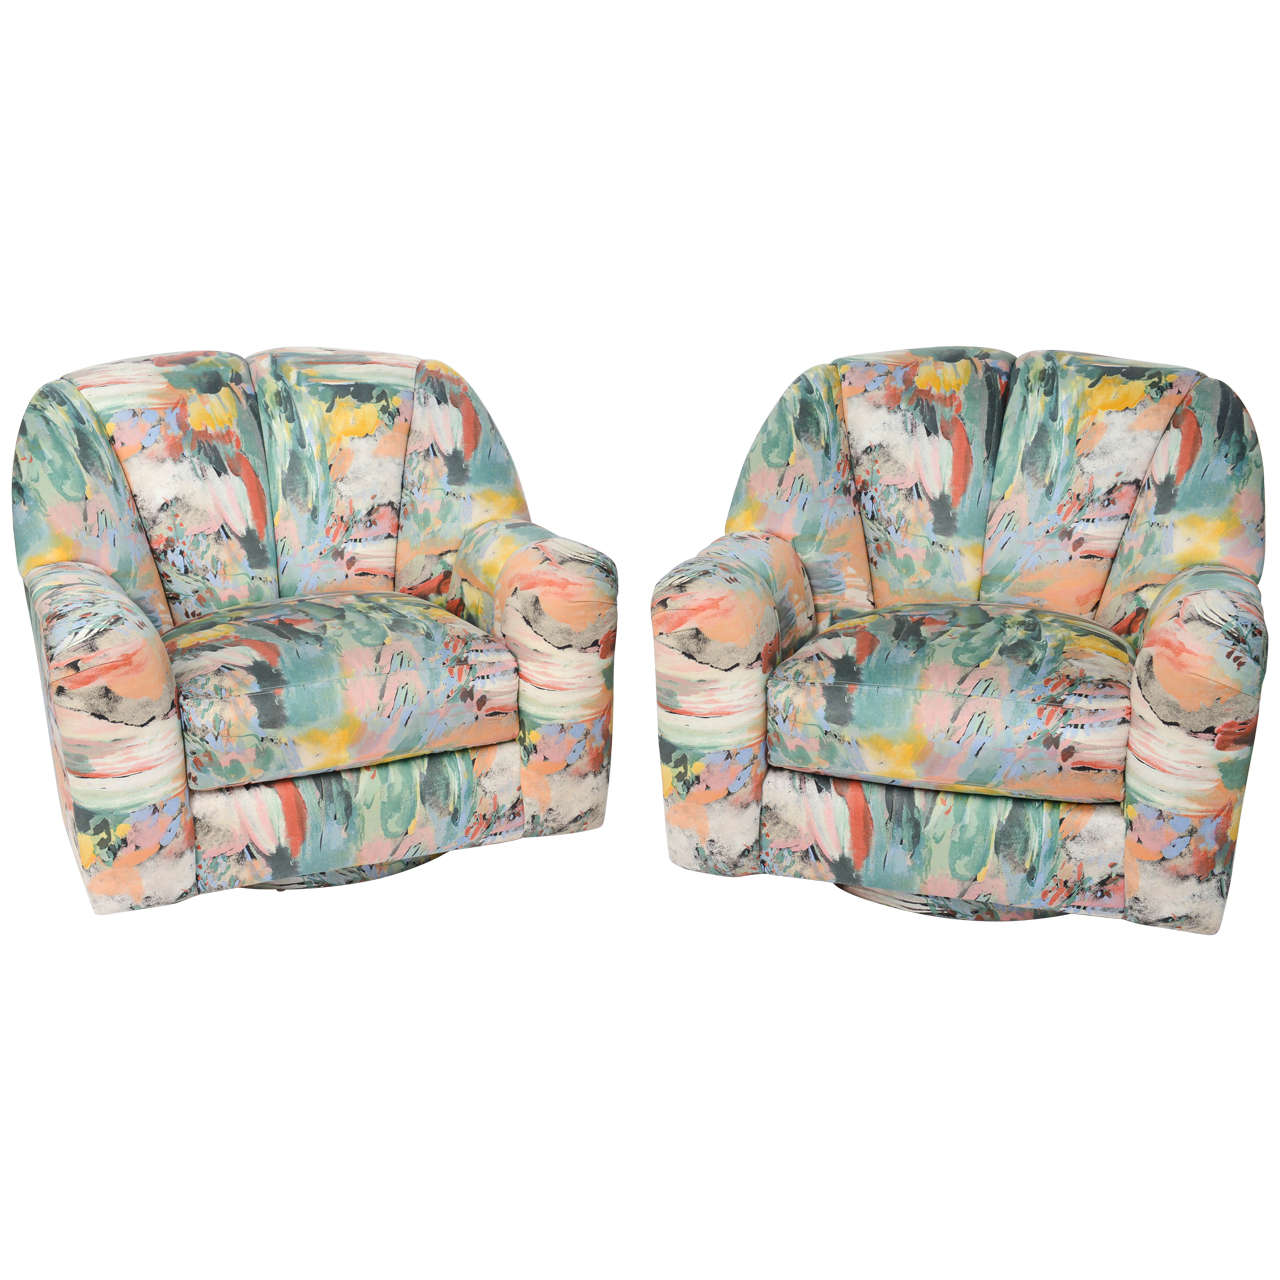 Exceptional 1980s Directional Swivel Lounge Chairs